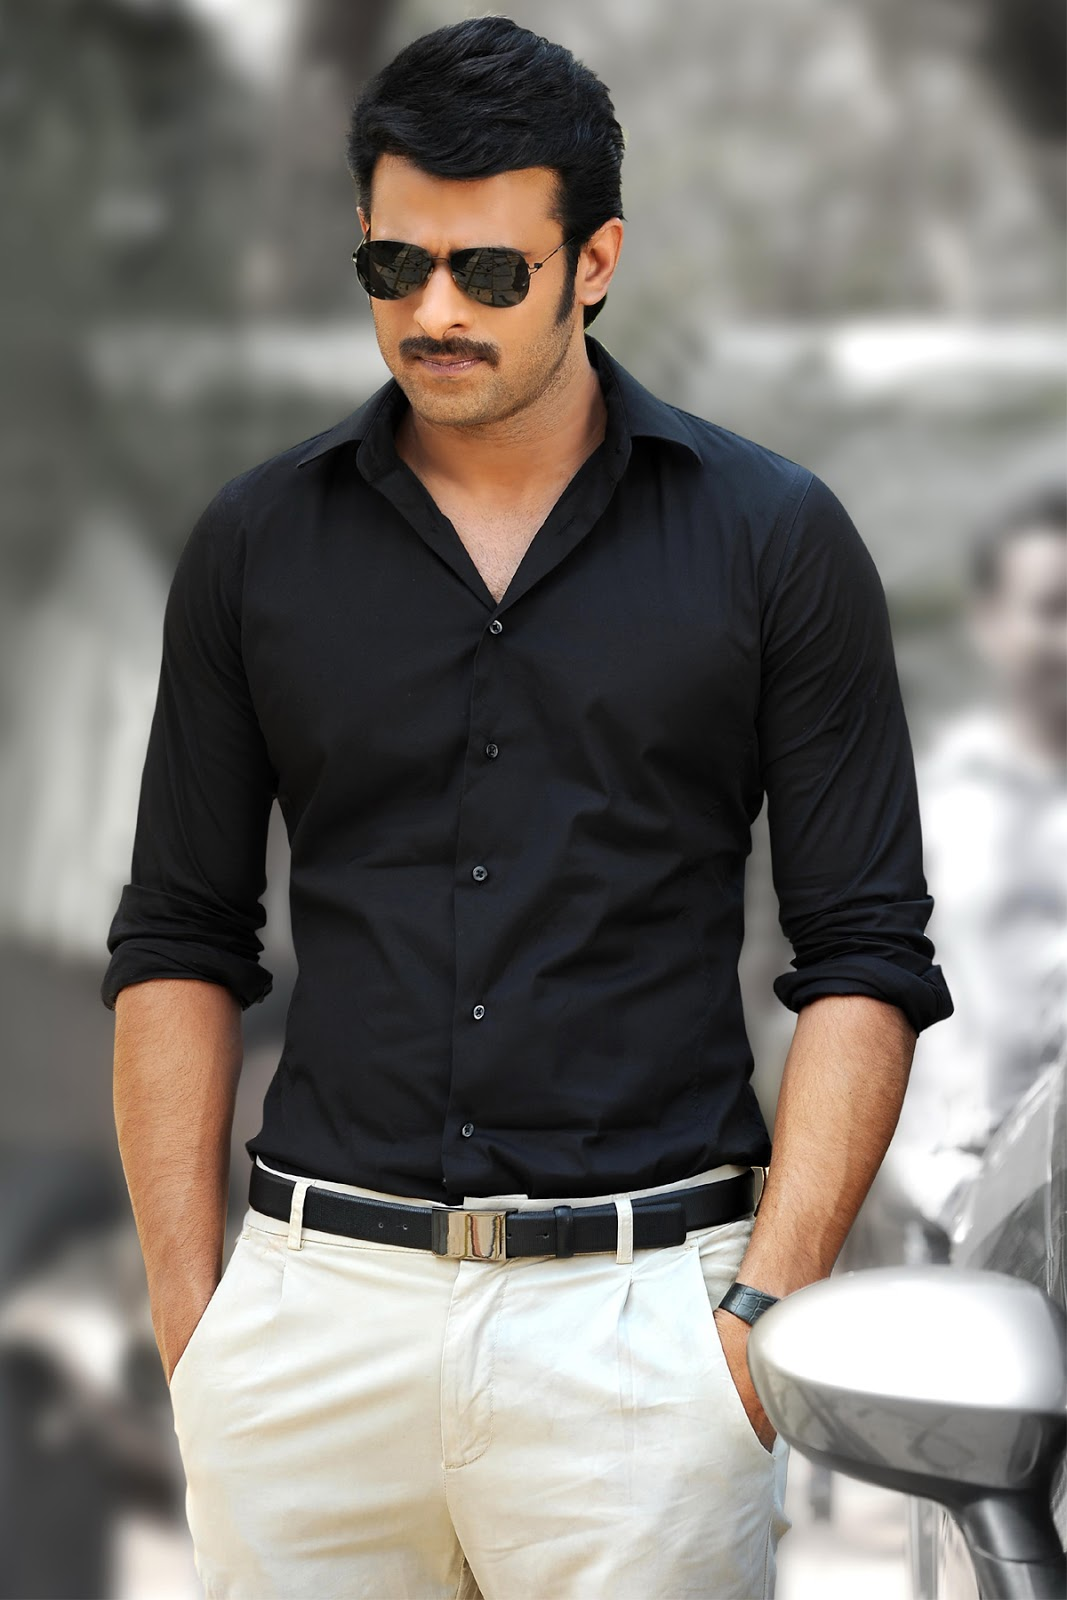 Prabhas Latest HD Wallpapers | HD Wallpapers (High Definition) | Free ...